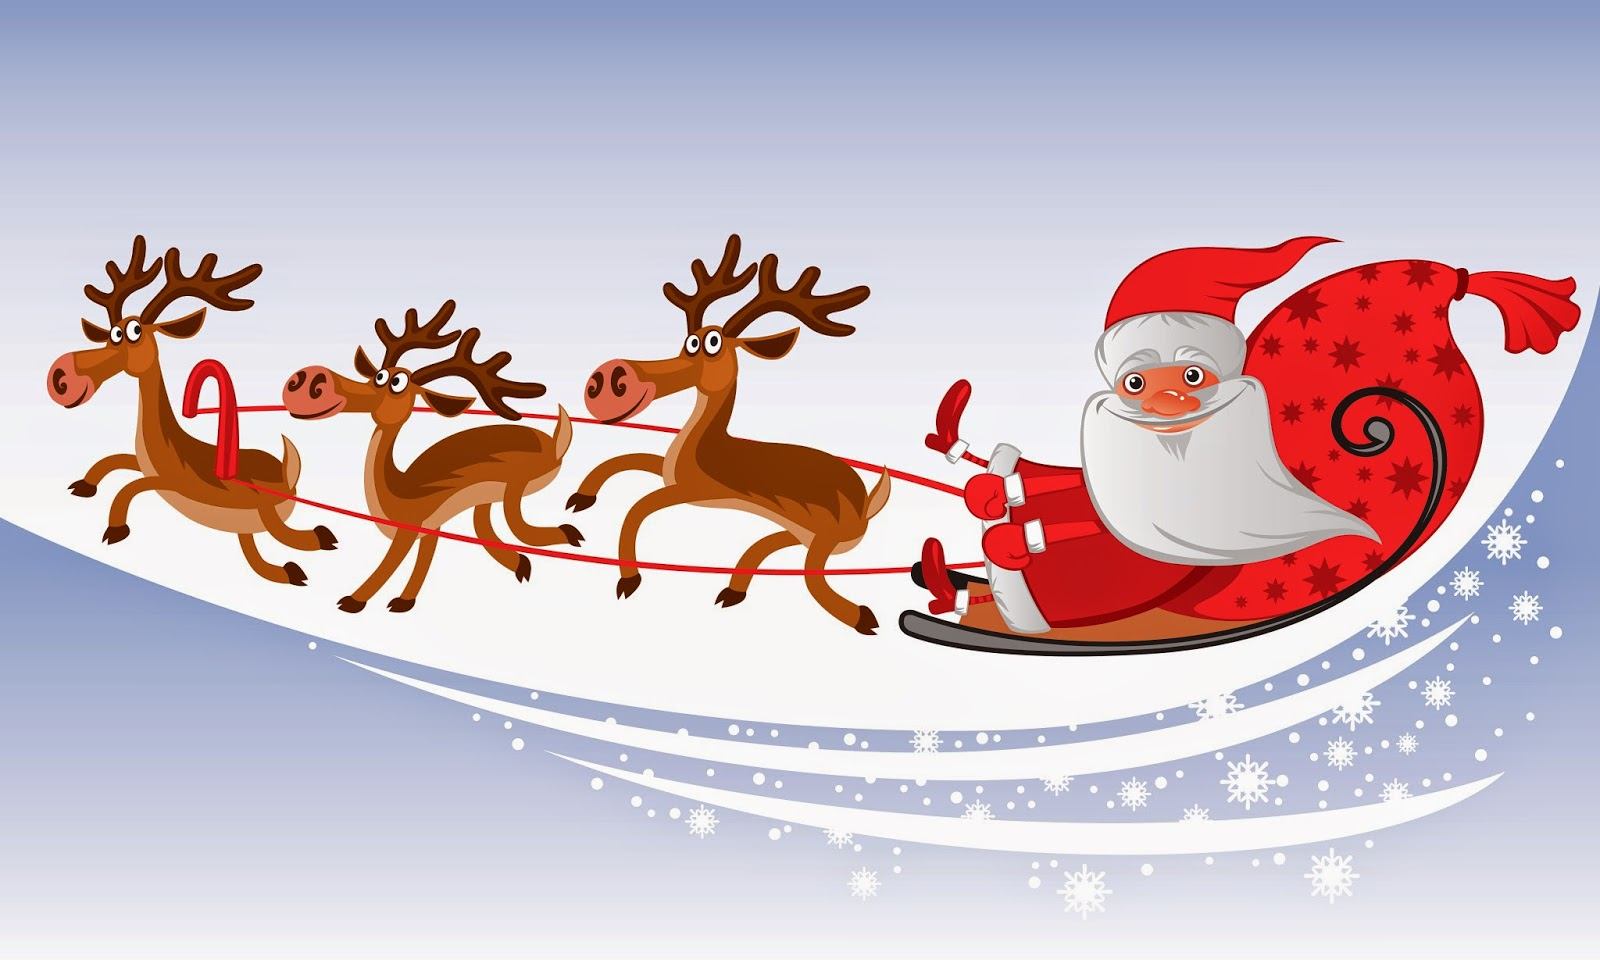 HD-cartoon-santa-claus-and-elk-Reindeer-vector-image-free-download-without-watermark.jpg